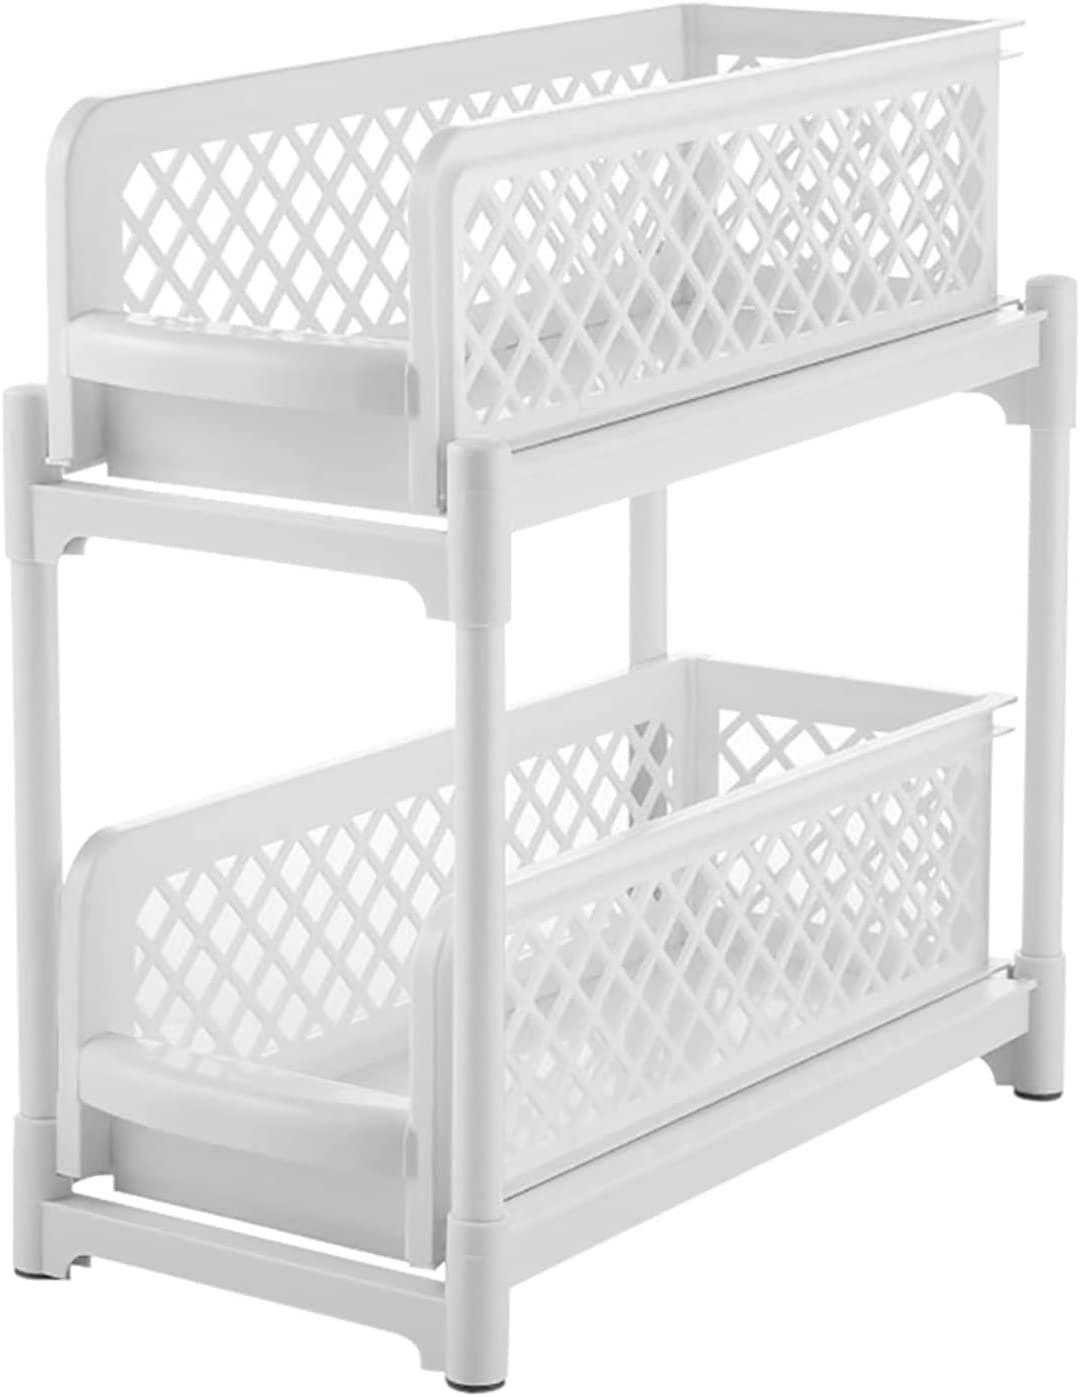 Spice Racks Basket Drawer Space Ranking TOP13 Saving Fresno Mall Baske Pull-out Removable